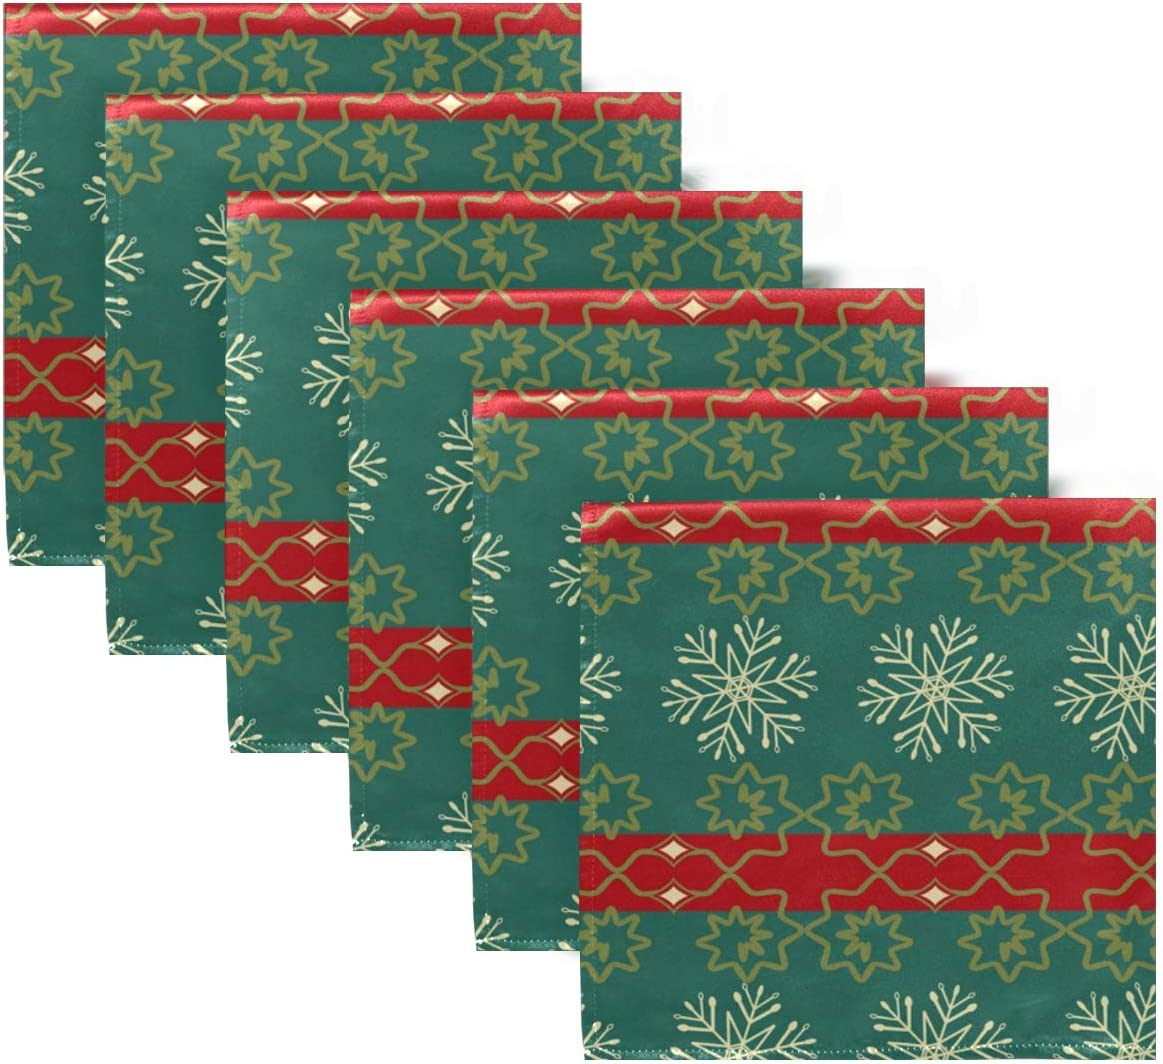 Merry Christmas Cloth Easy-to-use Dinner Napkins of Snowflake Set Washable Max 88% OFF 6